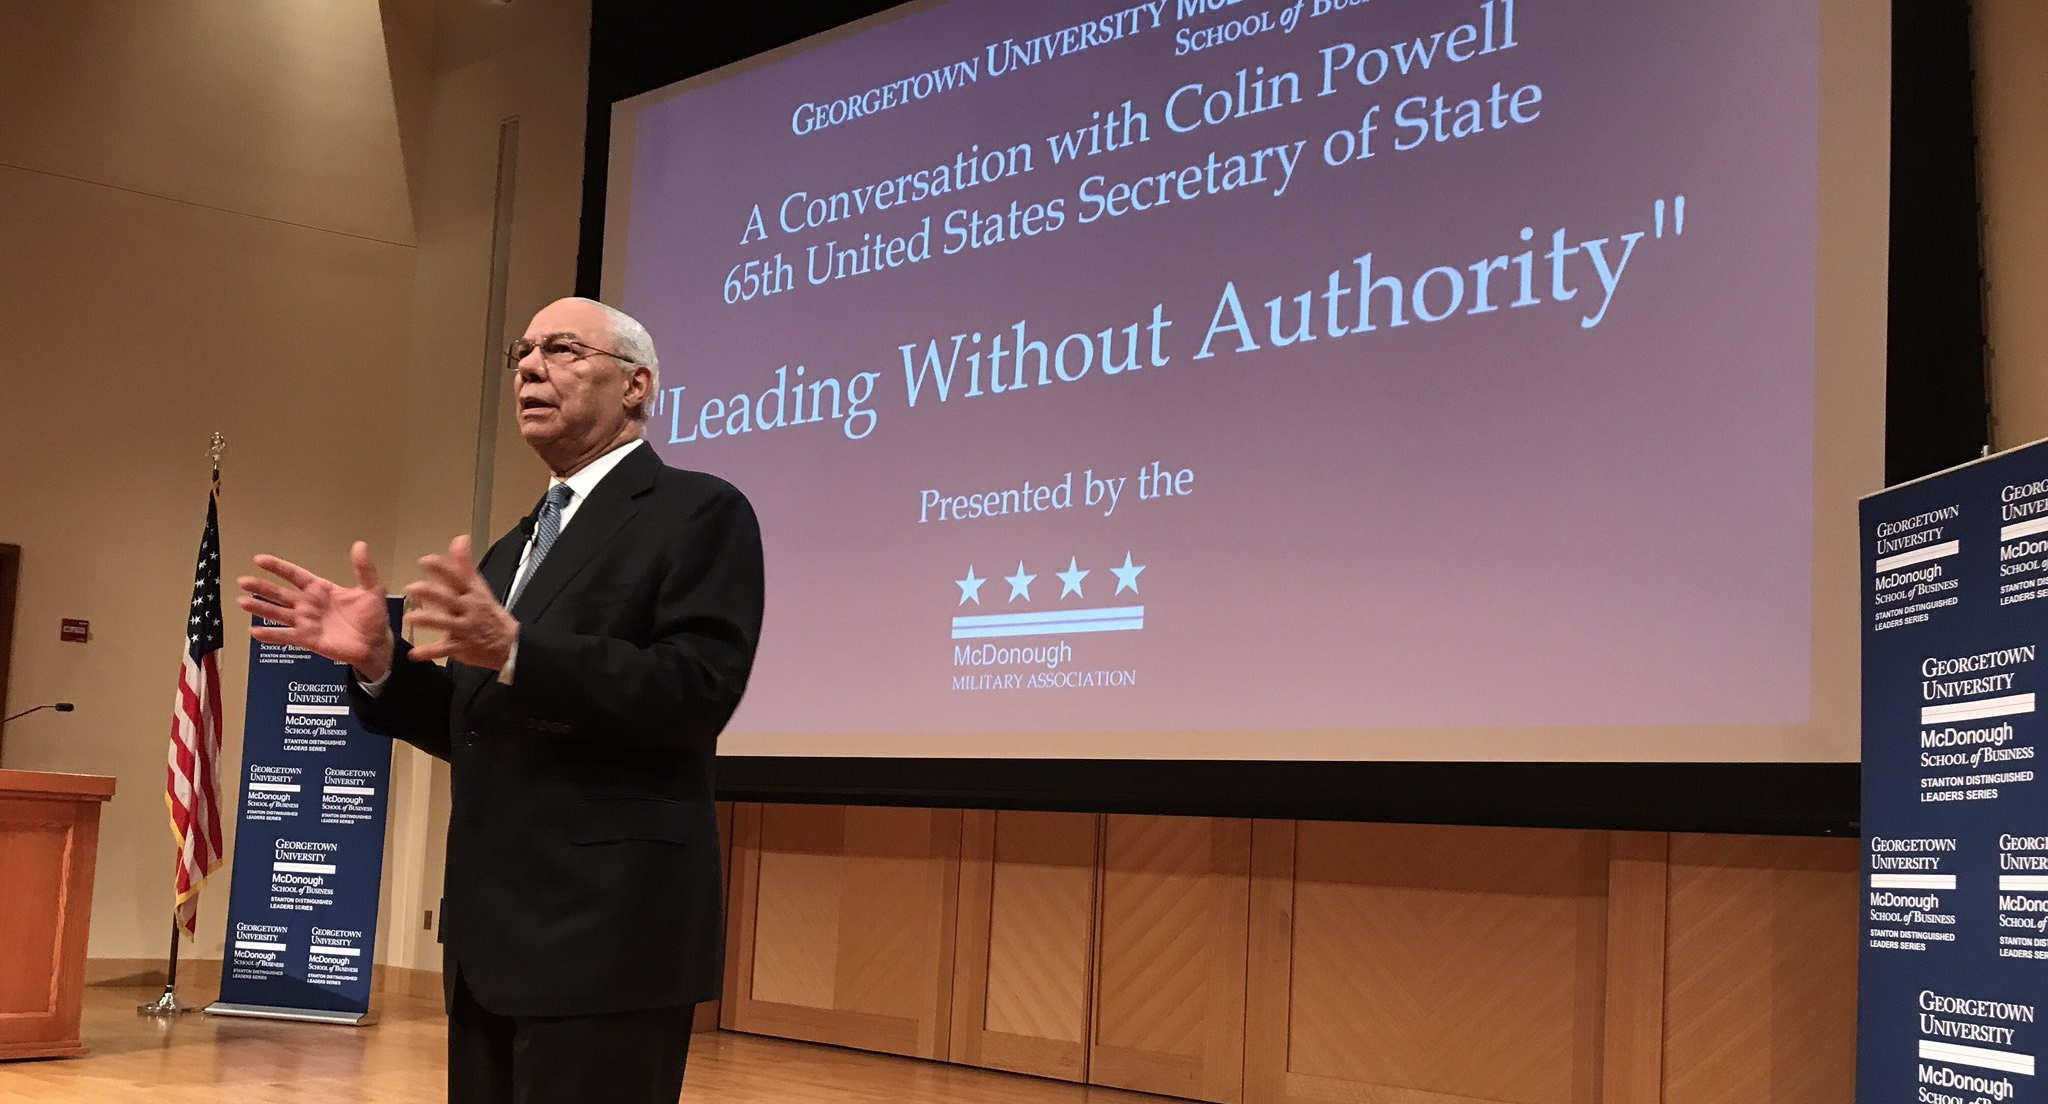 """Colin Powell, former secretary of state under President George W. Bush, said the United States will """"come through"""" its struggle to fully accept immigrants in a speech Wednesday.  Repost from  http://www.thehoya.com/colin-powell-nation-will-overcome-hostility-toward-immigrants/"""